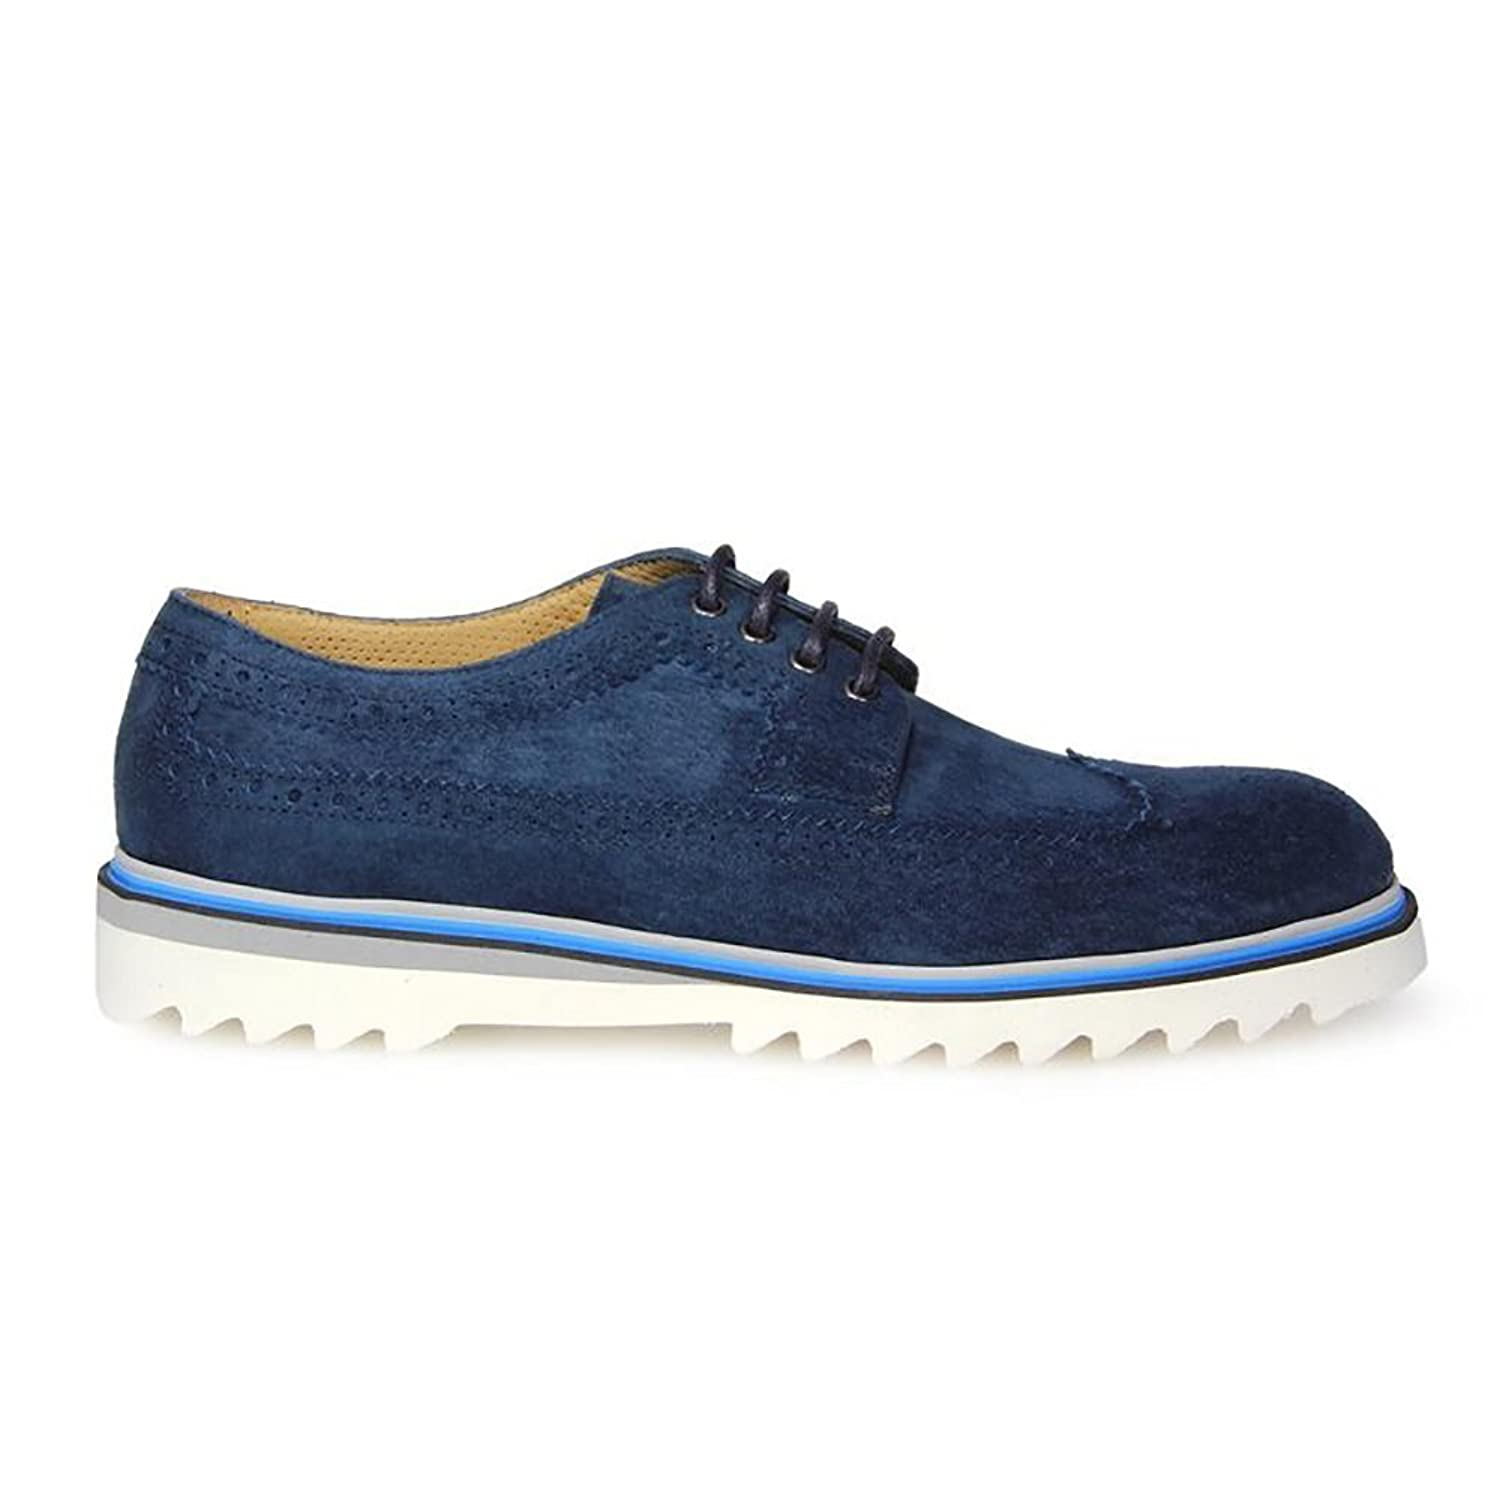 Men's 88001 Blue Suede Loafers